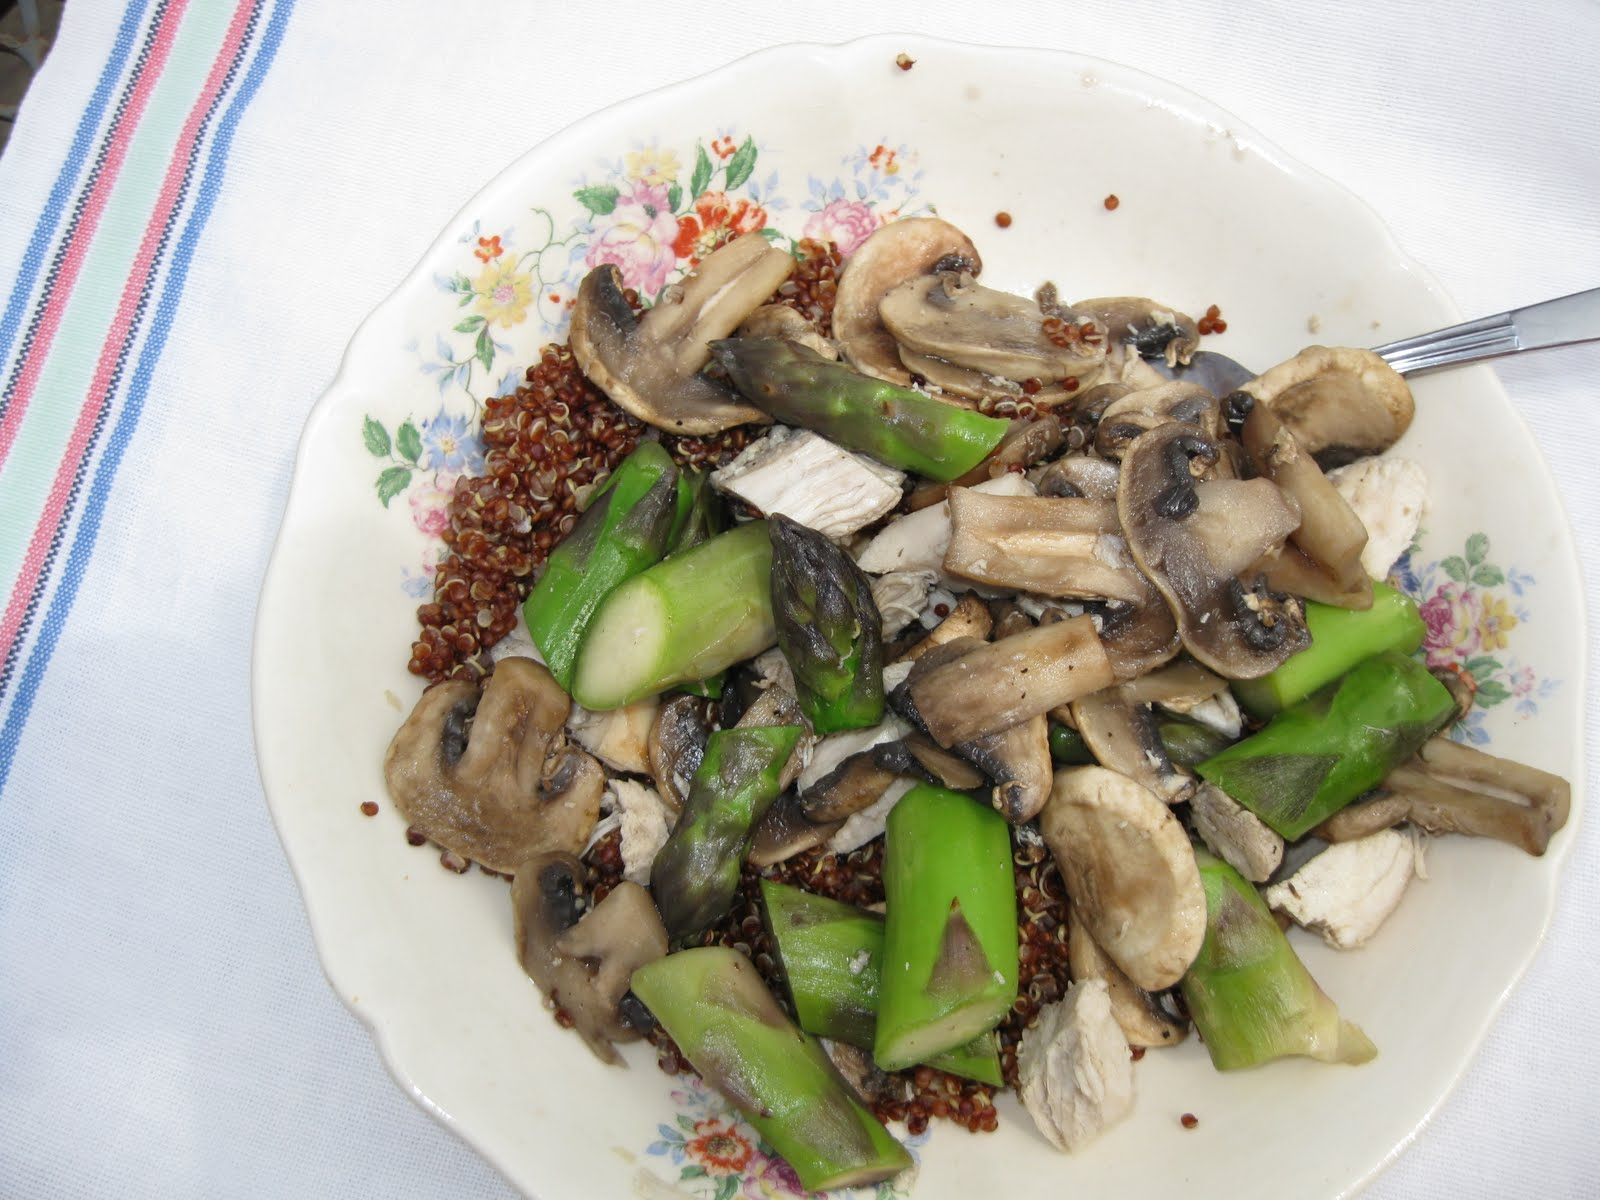 Andrea In Season: Sauteed Chicken with Asparagus and Mushrooms